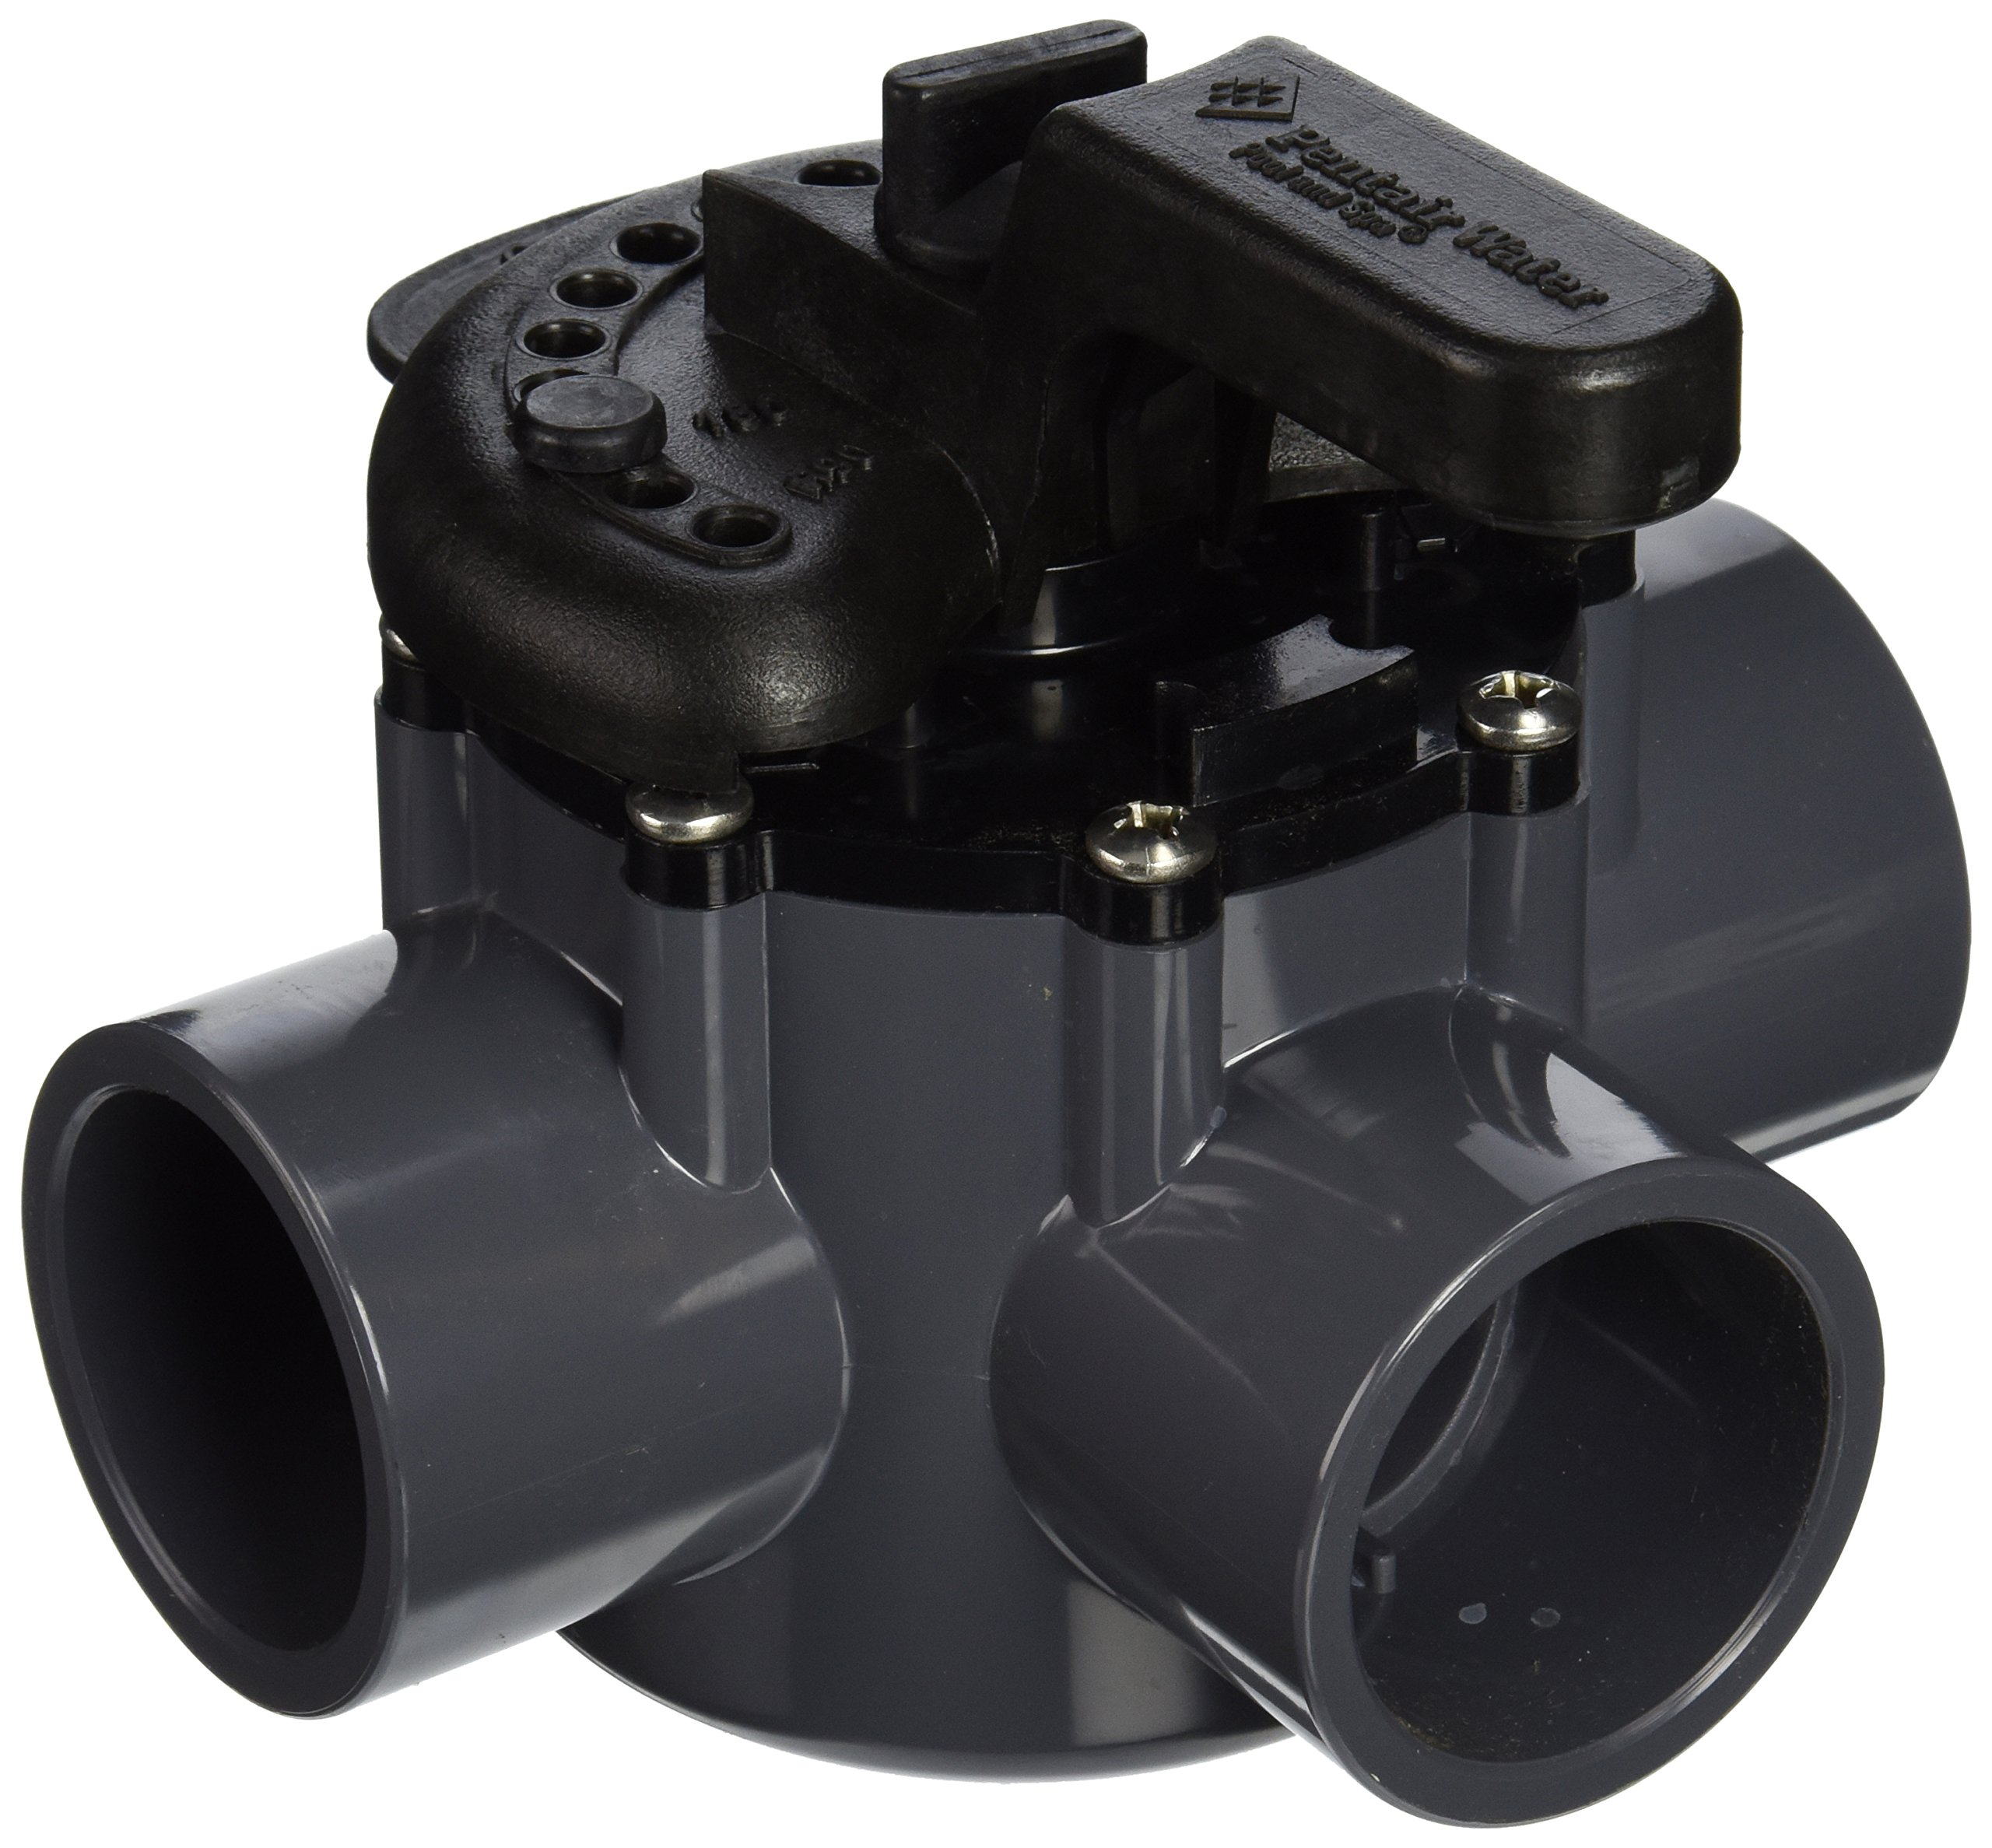 Pentair 263037 3-Way PVC 1-1/2 inch (2 inch slip outside) Pool And Spa Diverter Valve